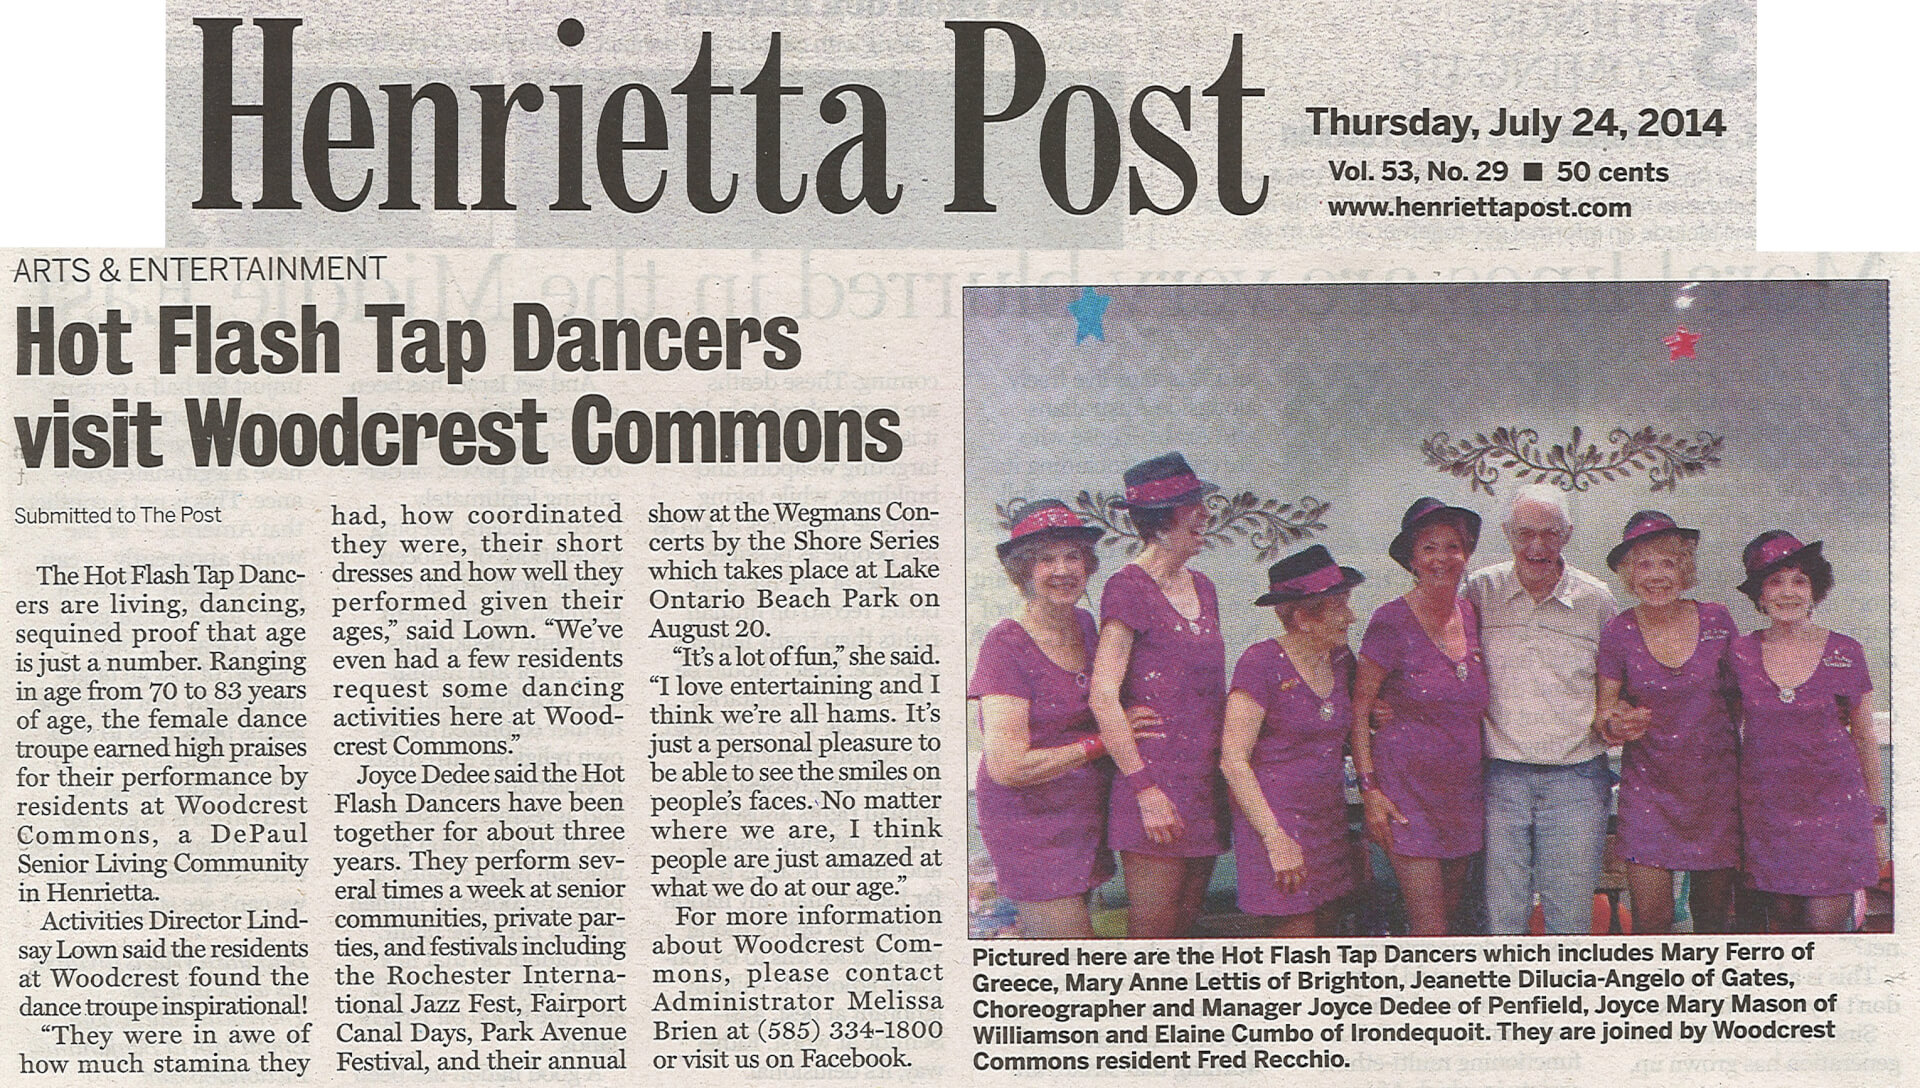 Woodcrest Commons Hot Flash Tap Dancers article in the Henrietta Post July 25, 2014